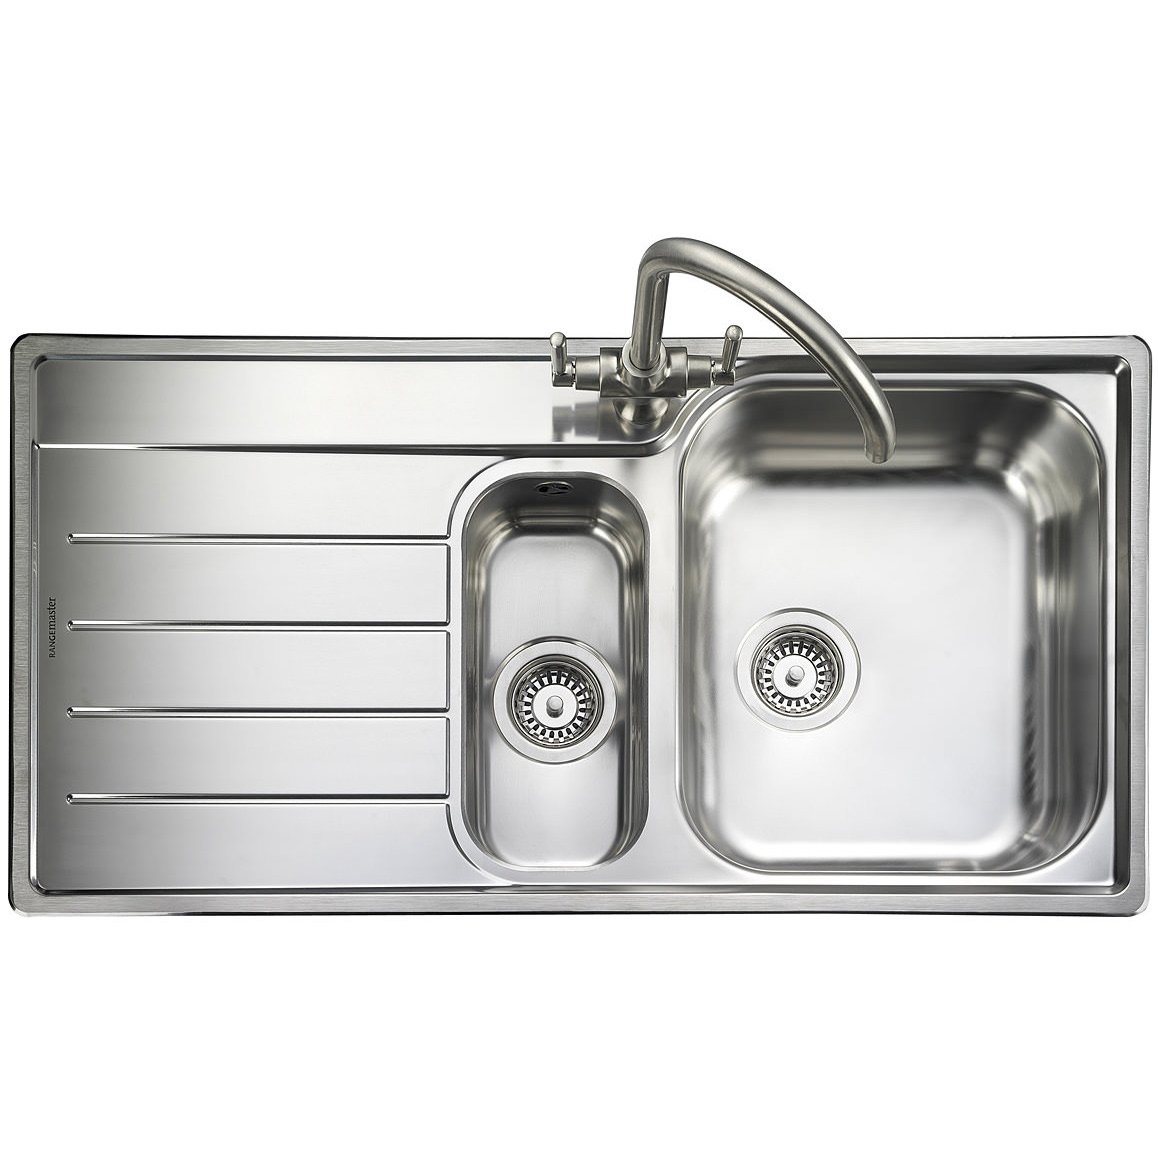 rangemaster kitchen sinks rangemaster oakland 1 5 bowl stainless steel kitchen sink lh 1721